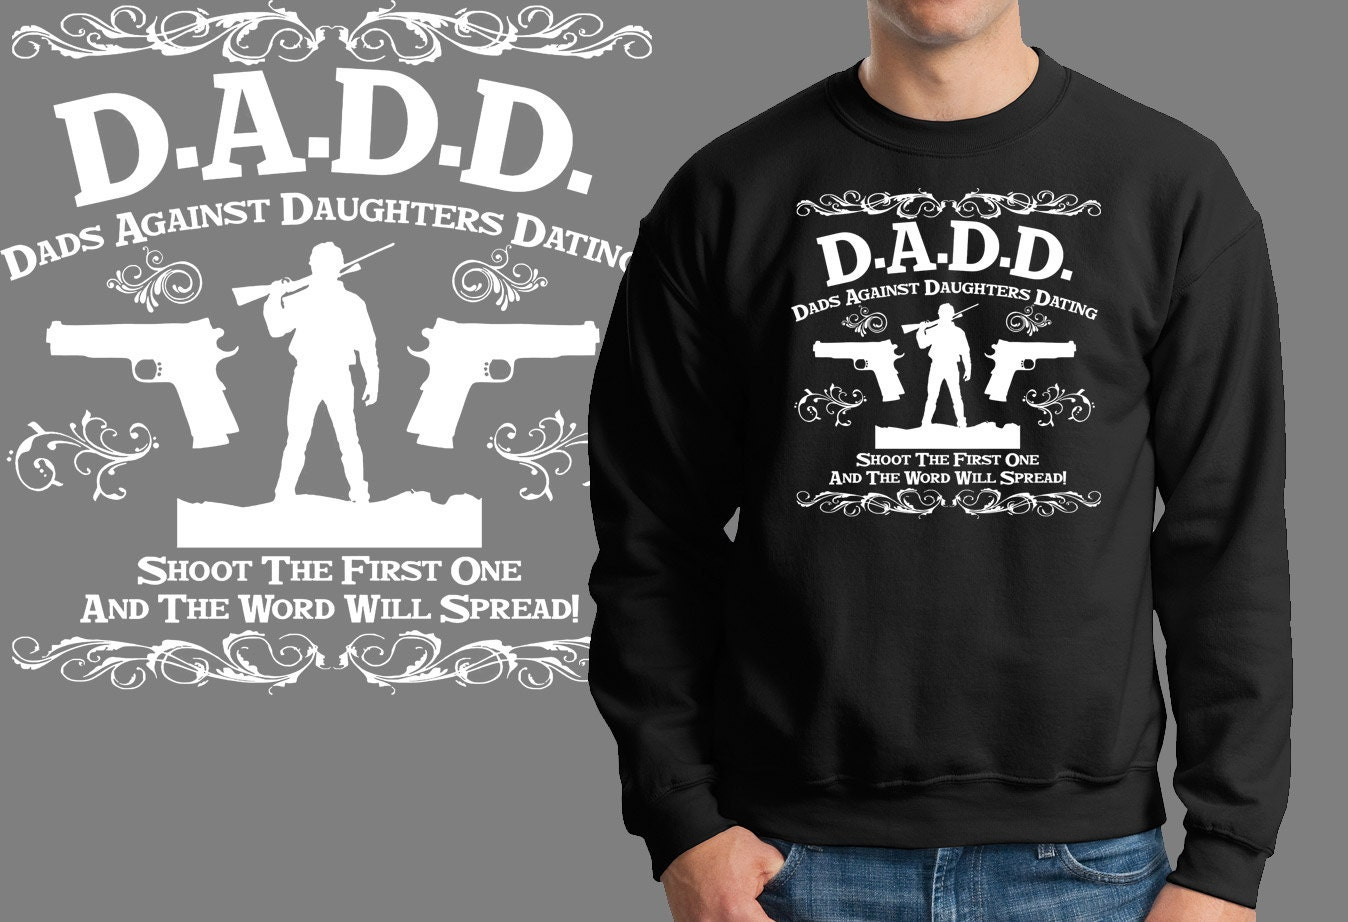 Dads against daughters dating hoodie